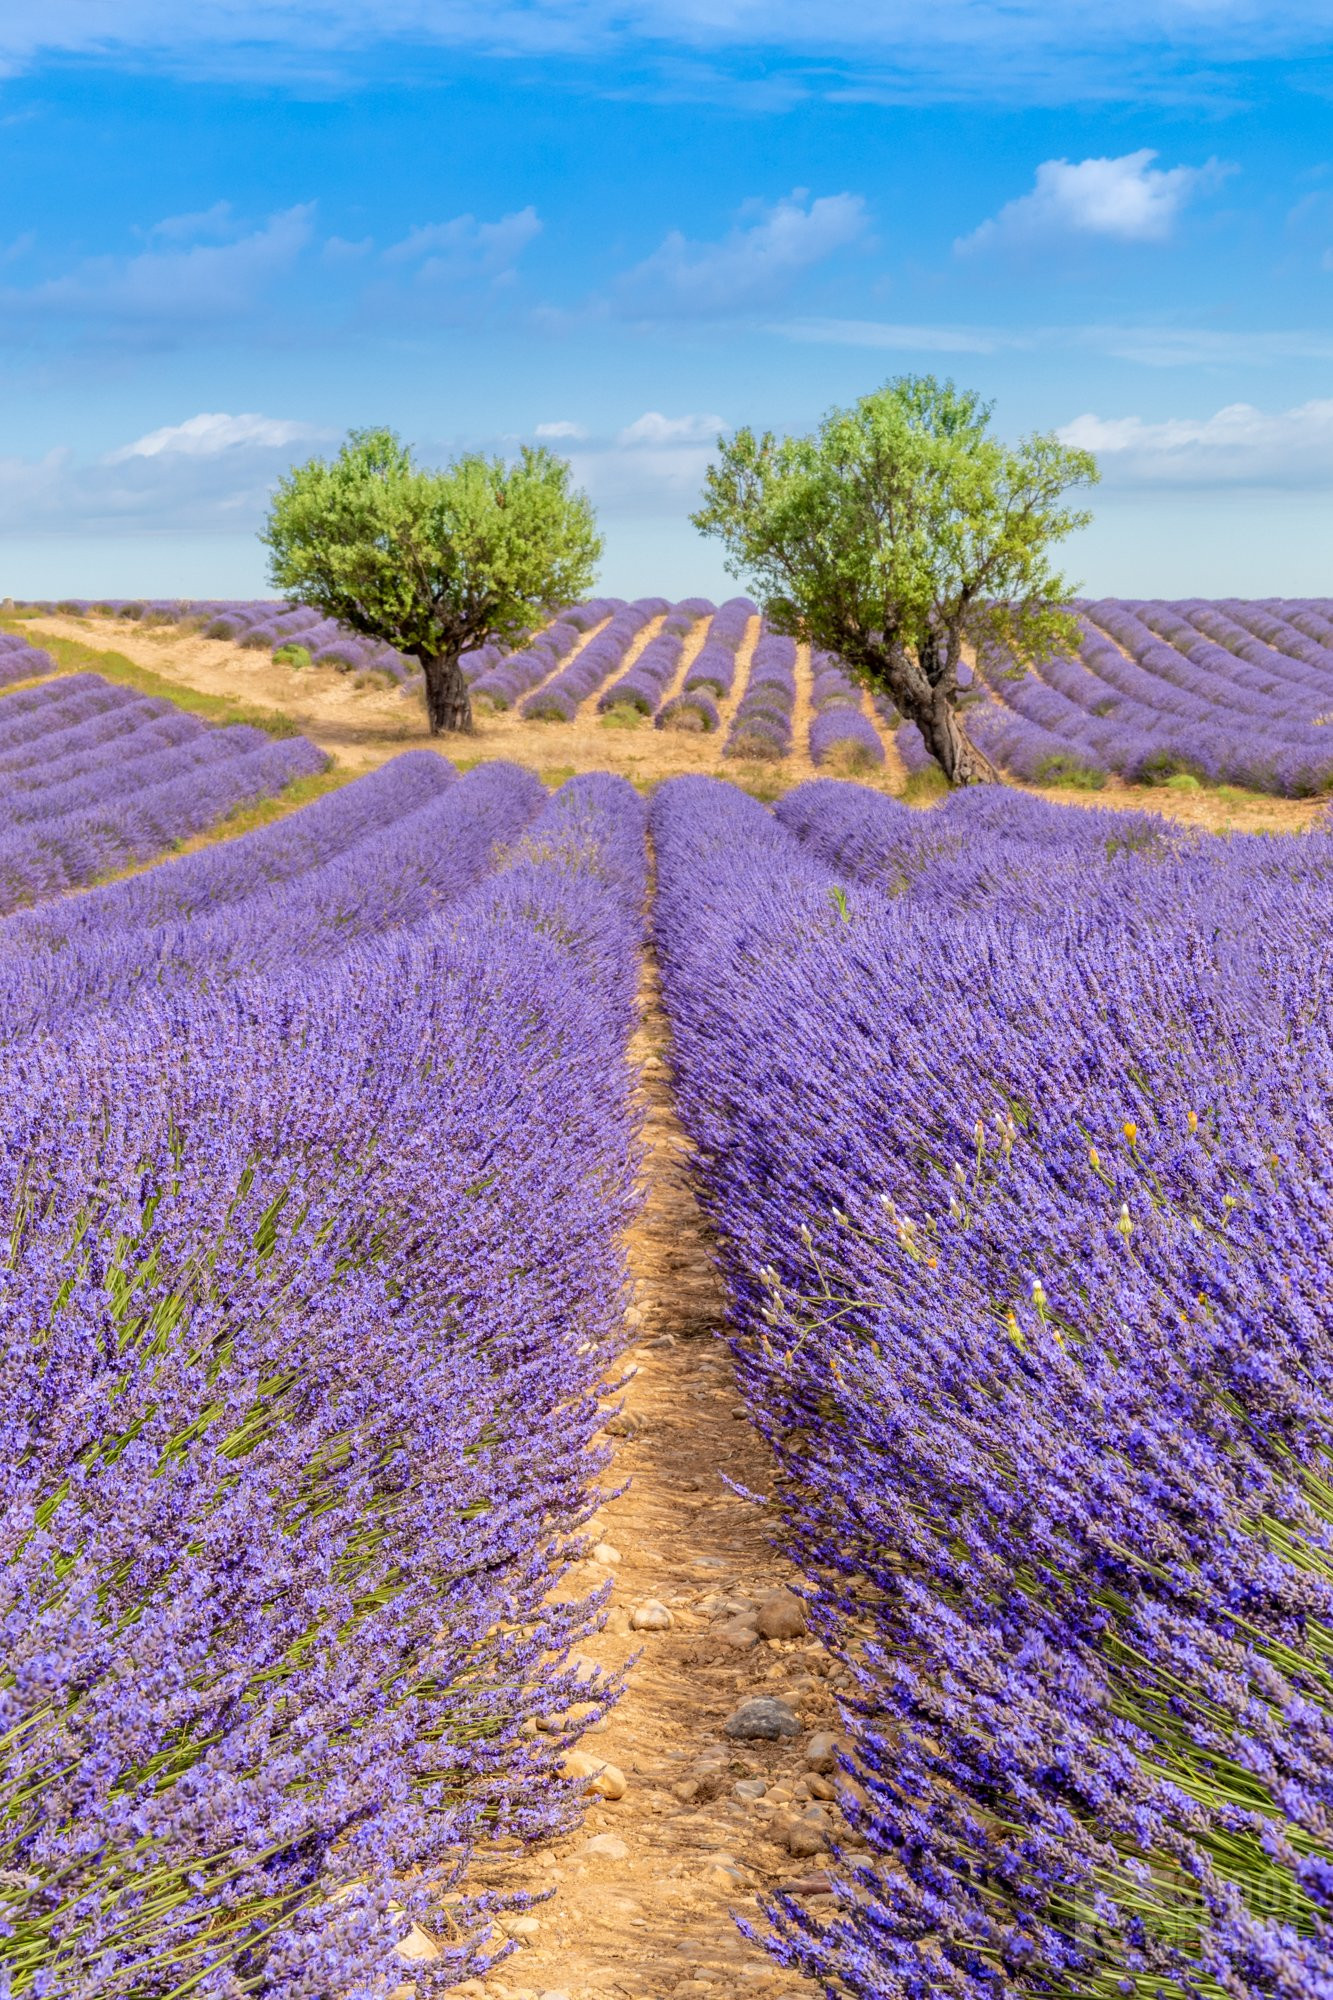 Colorful Angelvin lavender fields and trees in Valensole